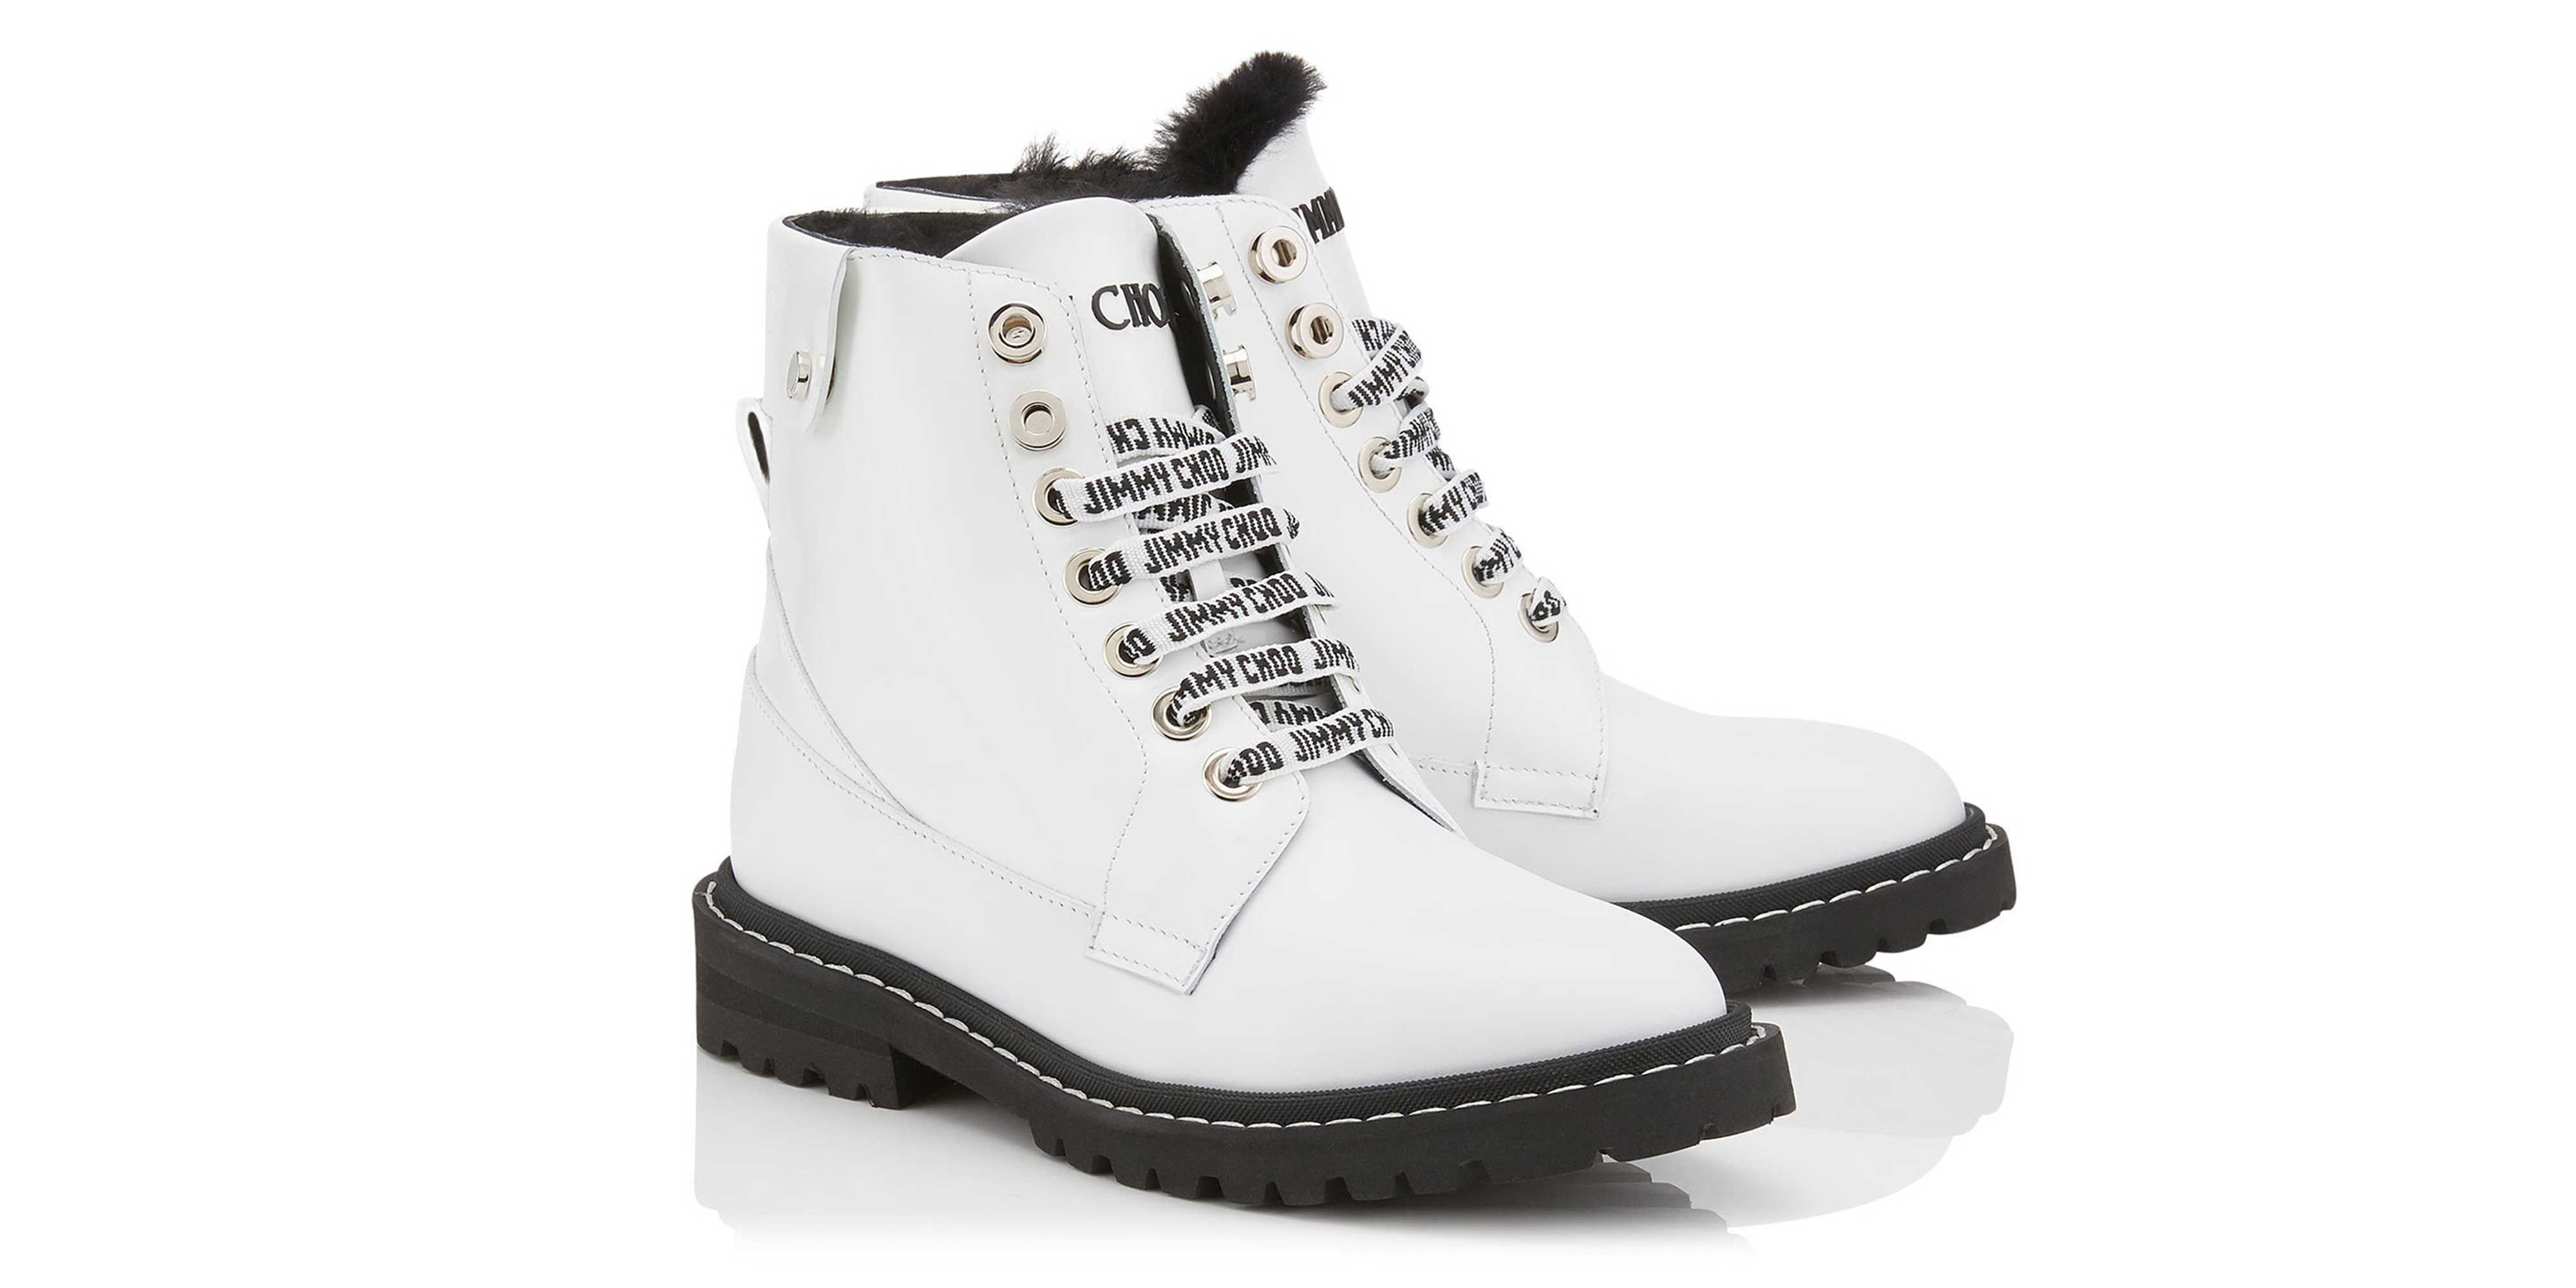 14411063984 Jimmy Choo has launched heated boots just in time for winter